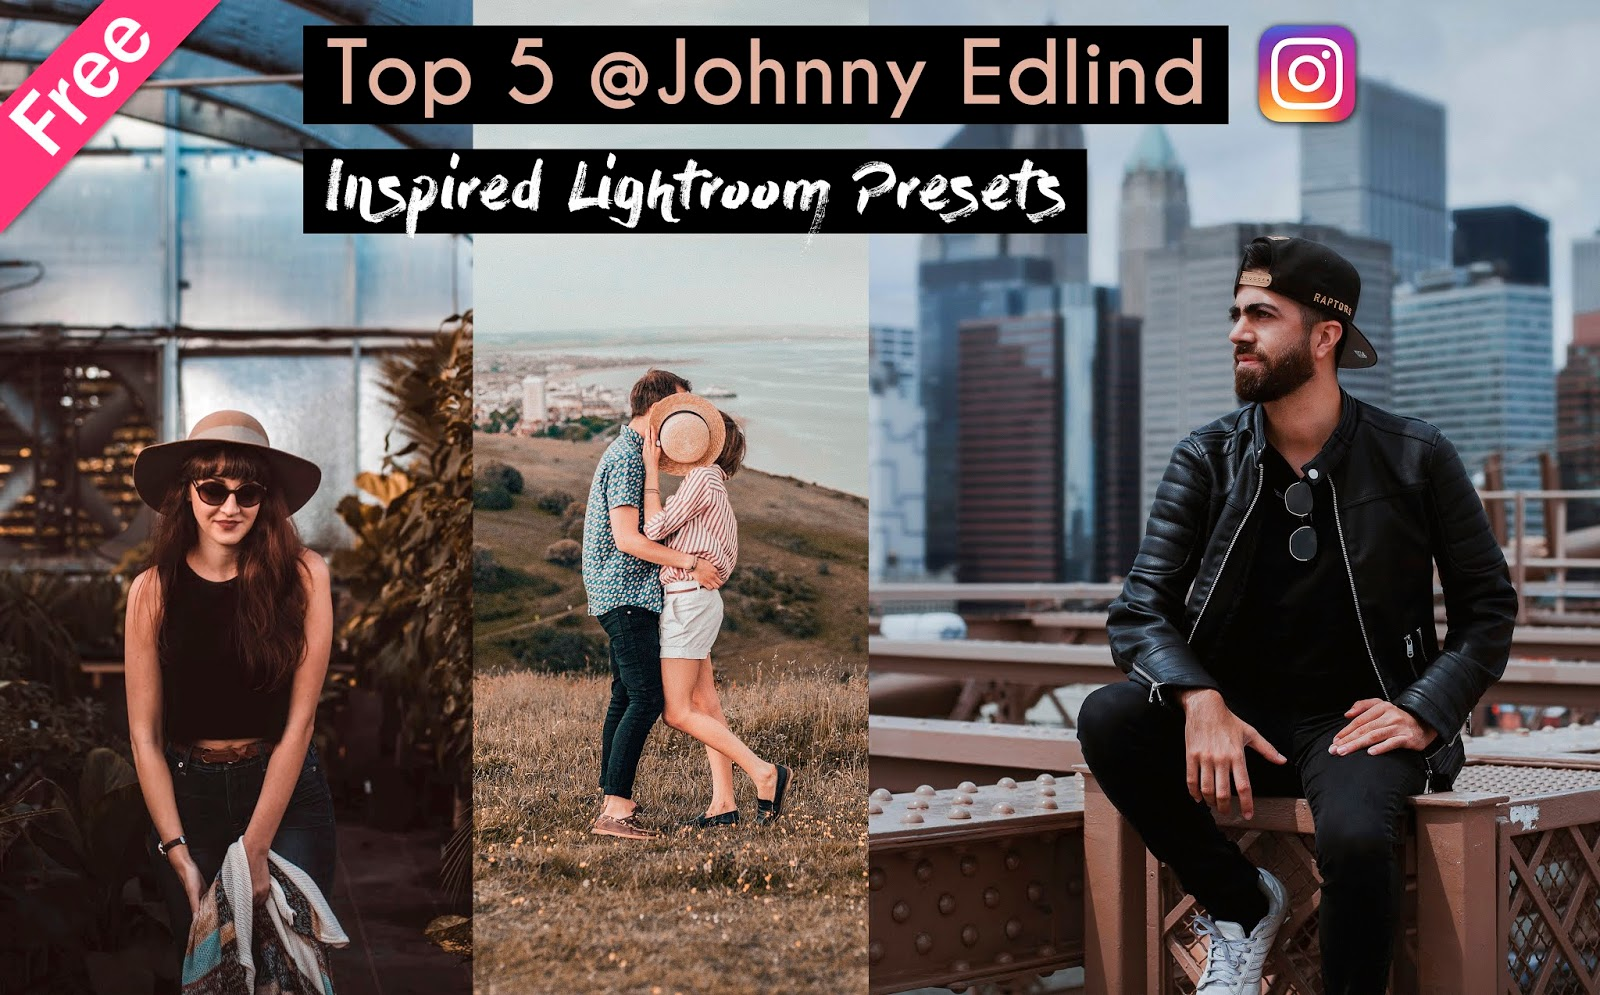 Top 5 @johnnyedlind Inspired Lightroom Presets for Free | How to Edit Photos Like Johnny Edlind in Lightroom